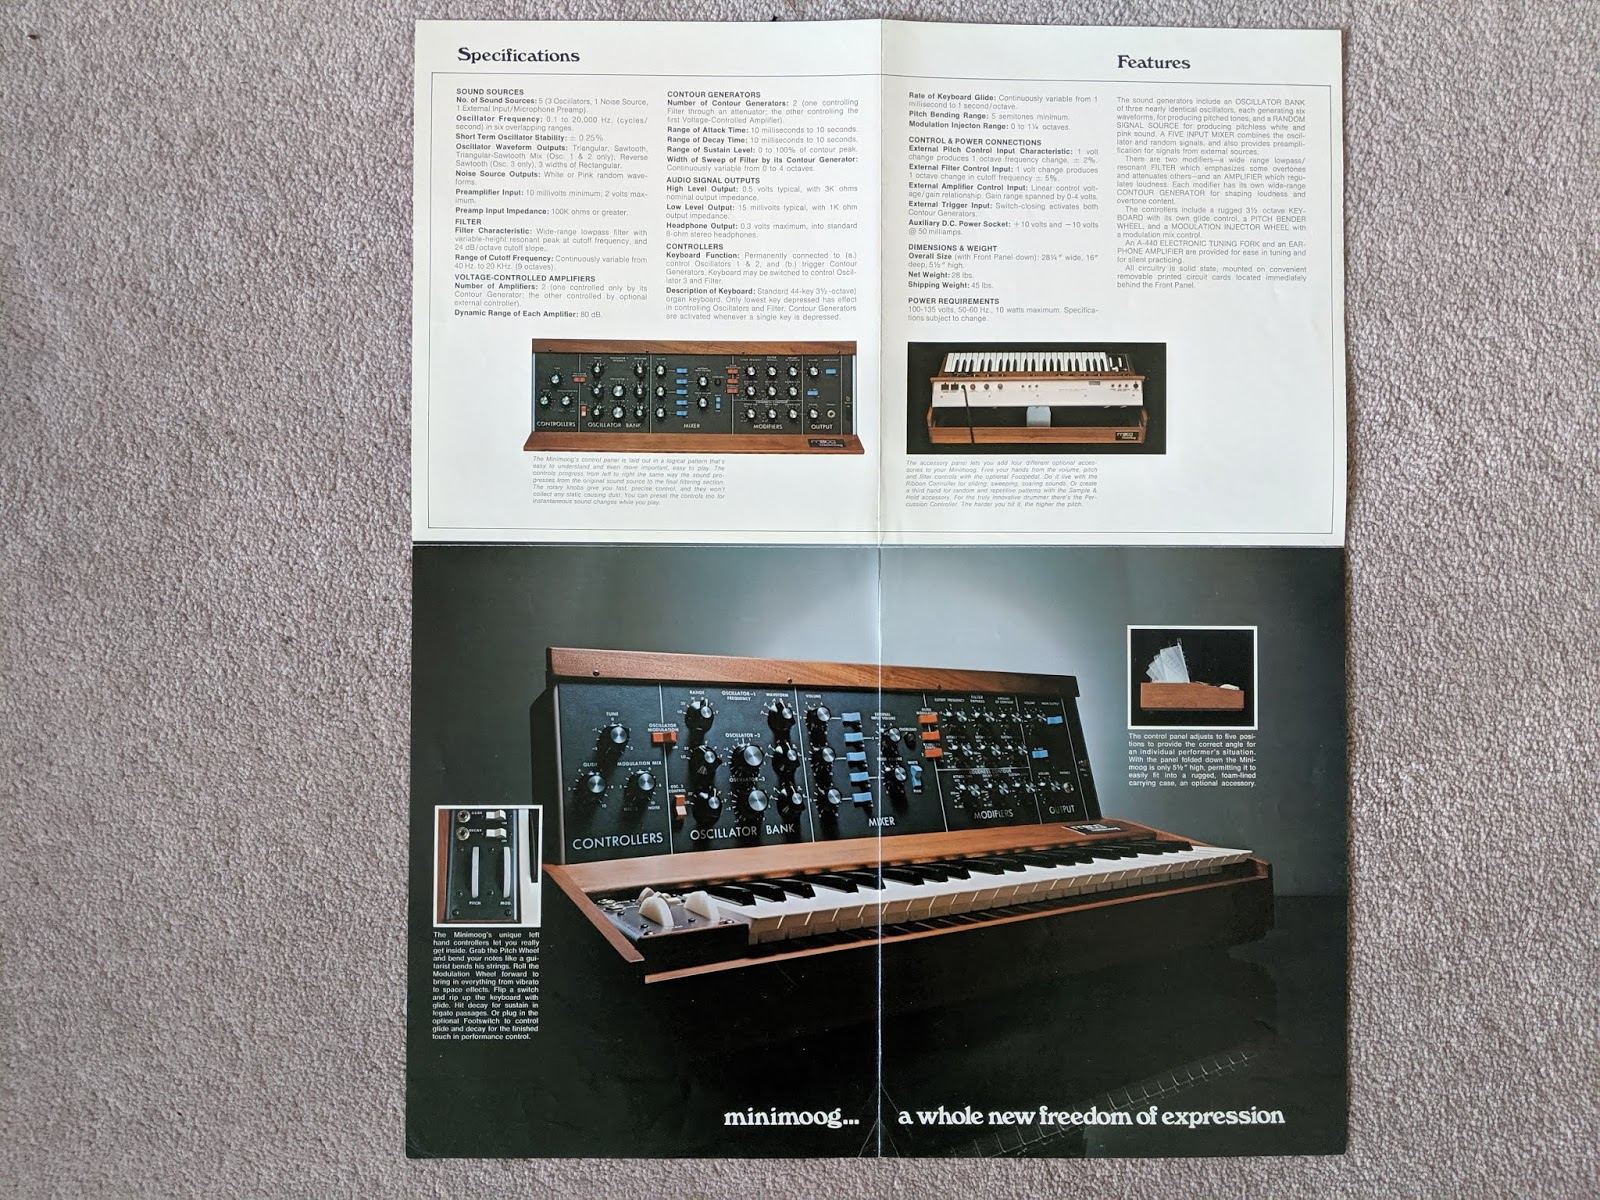 Retro Synth Ads: May 2019